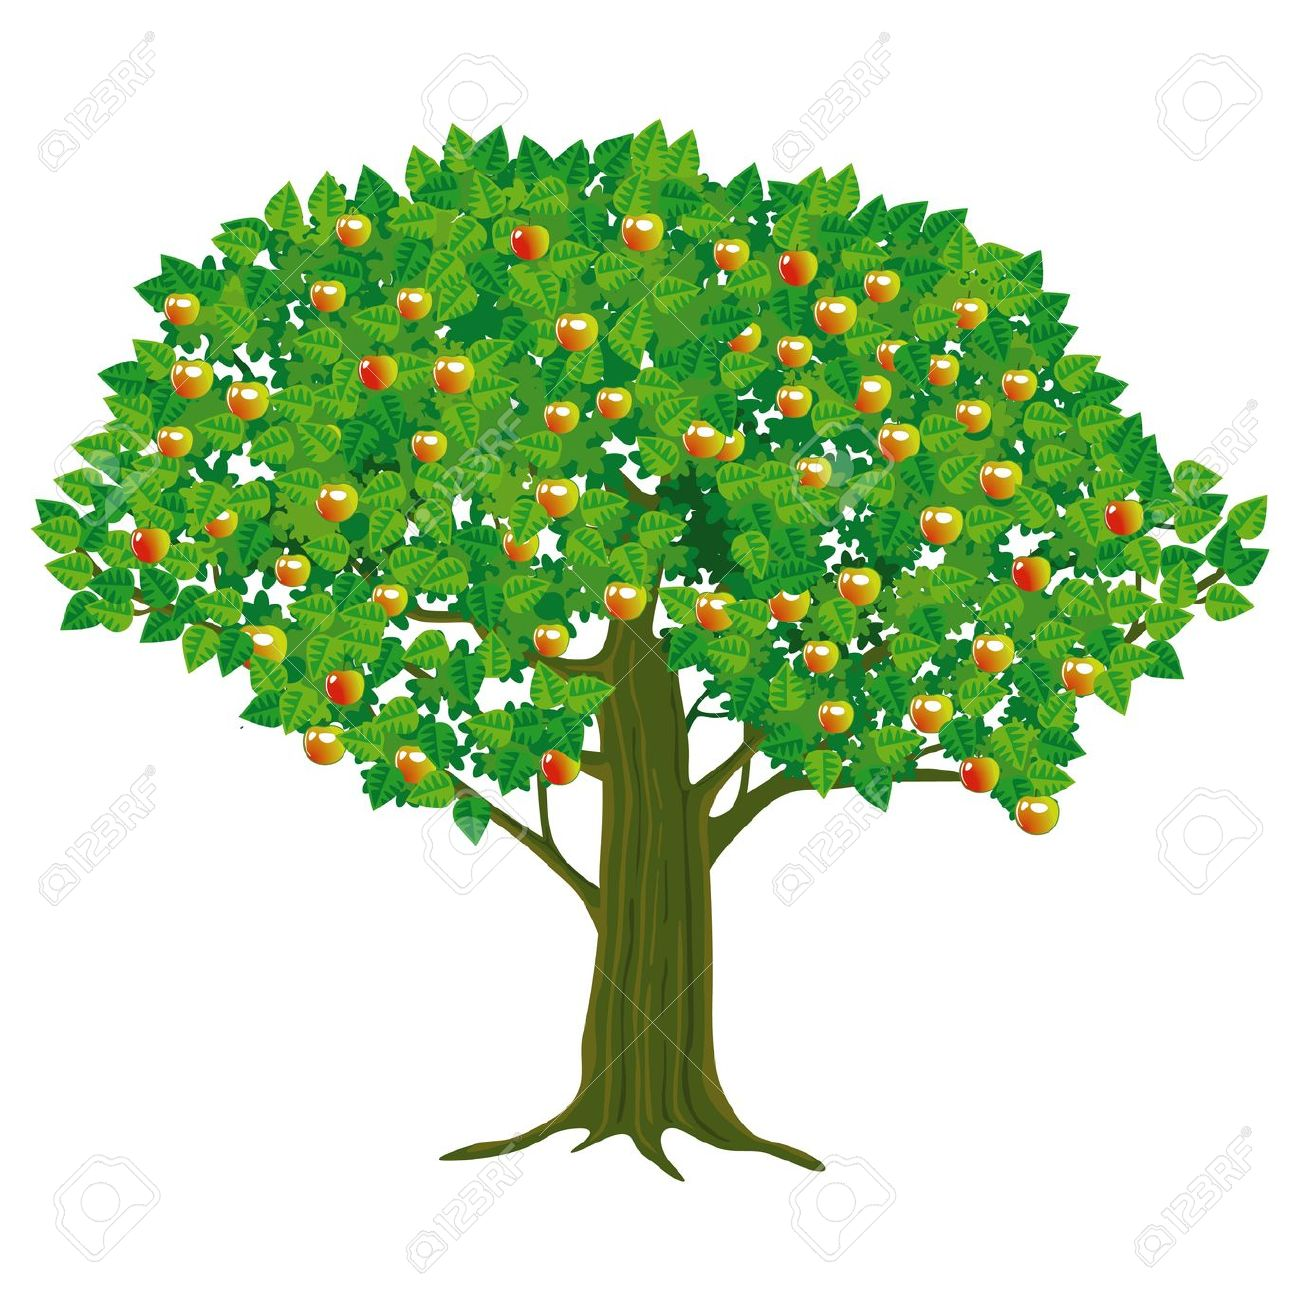 Tree fruit clipart - Clipground